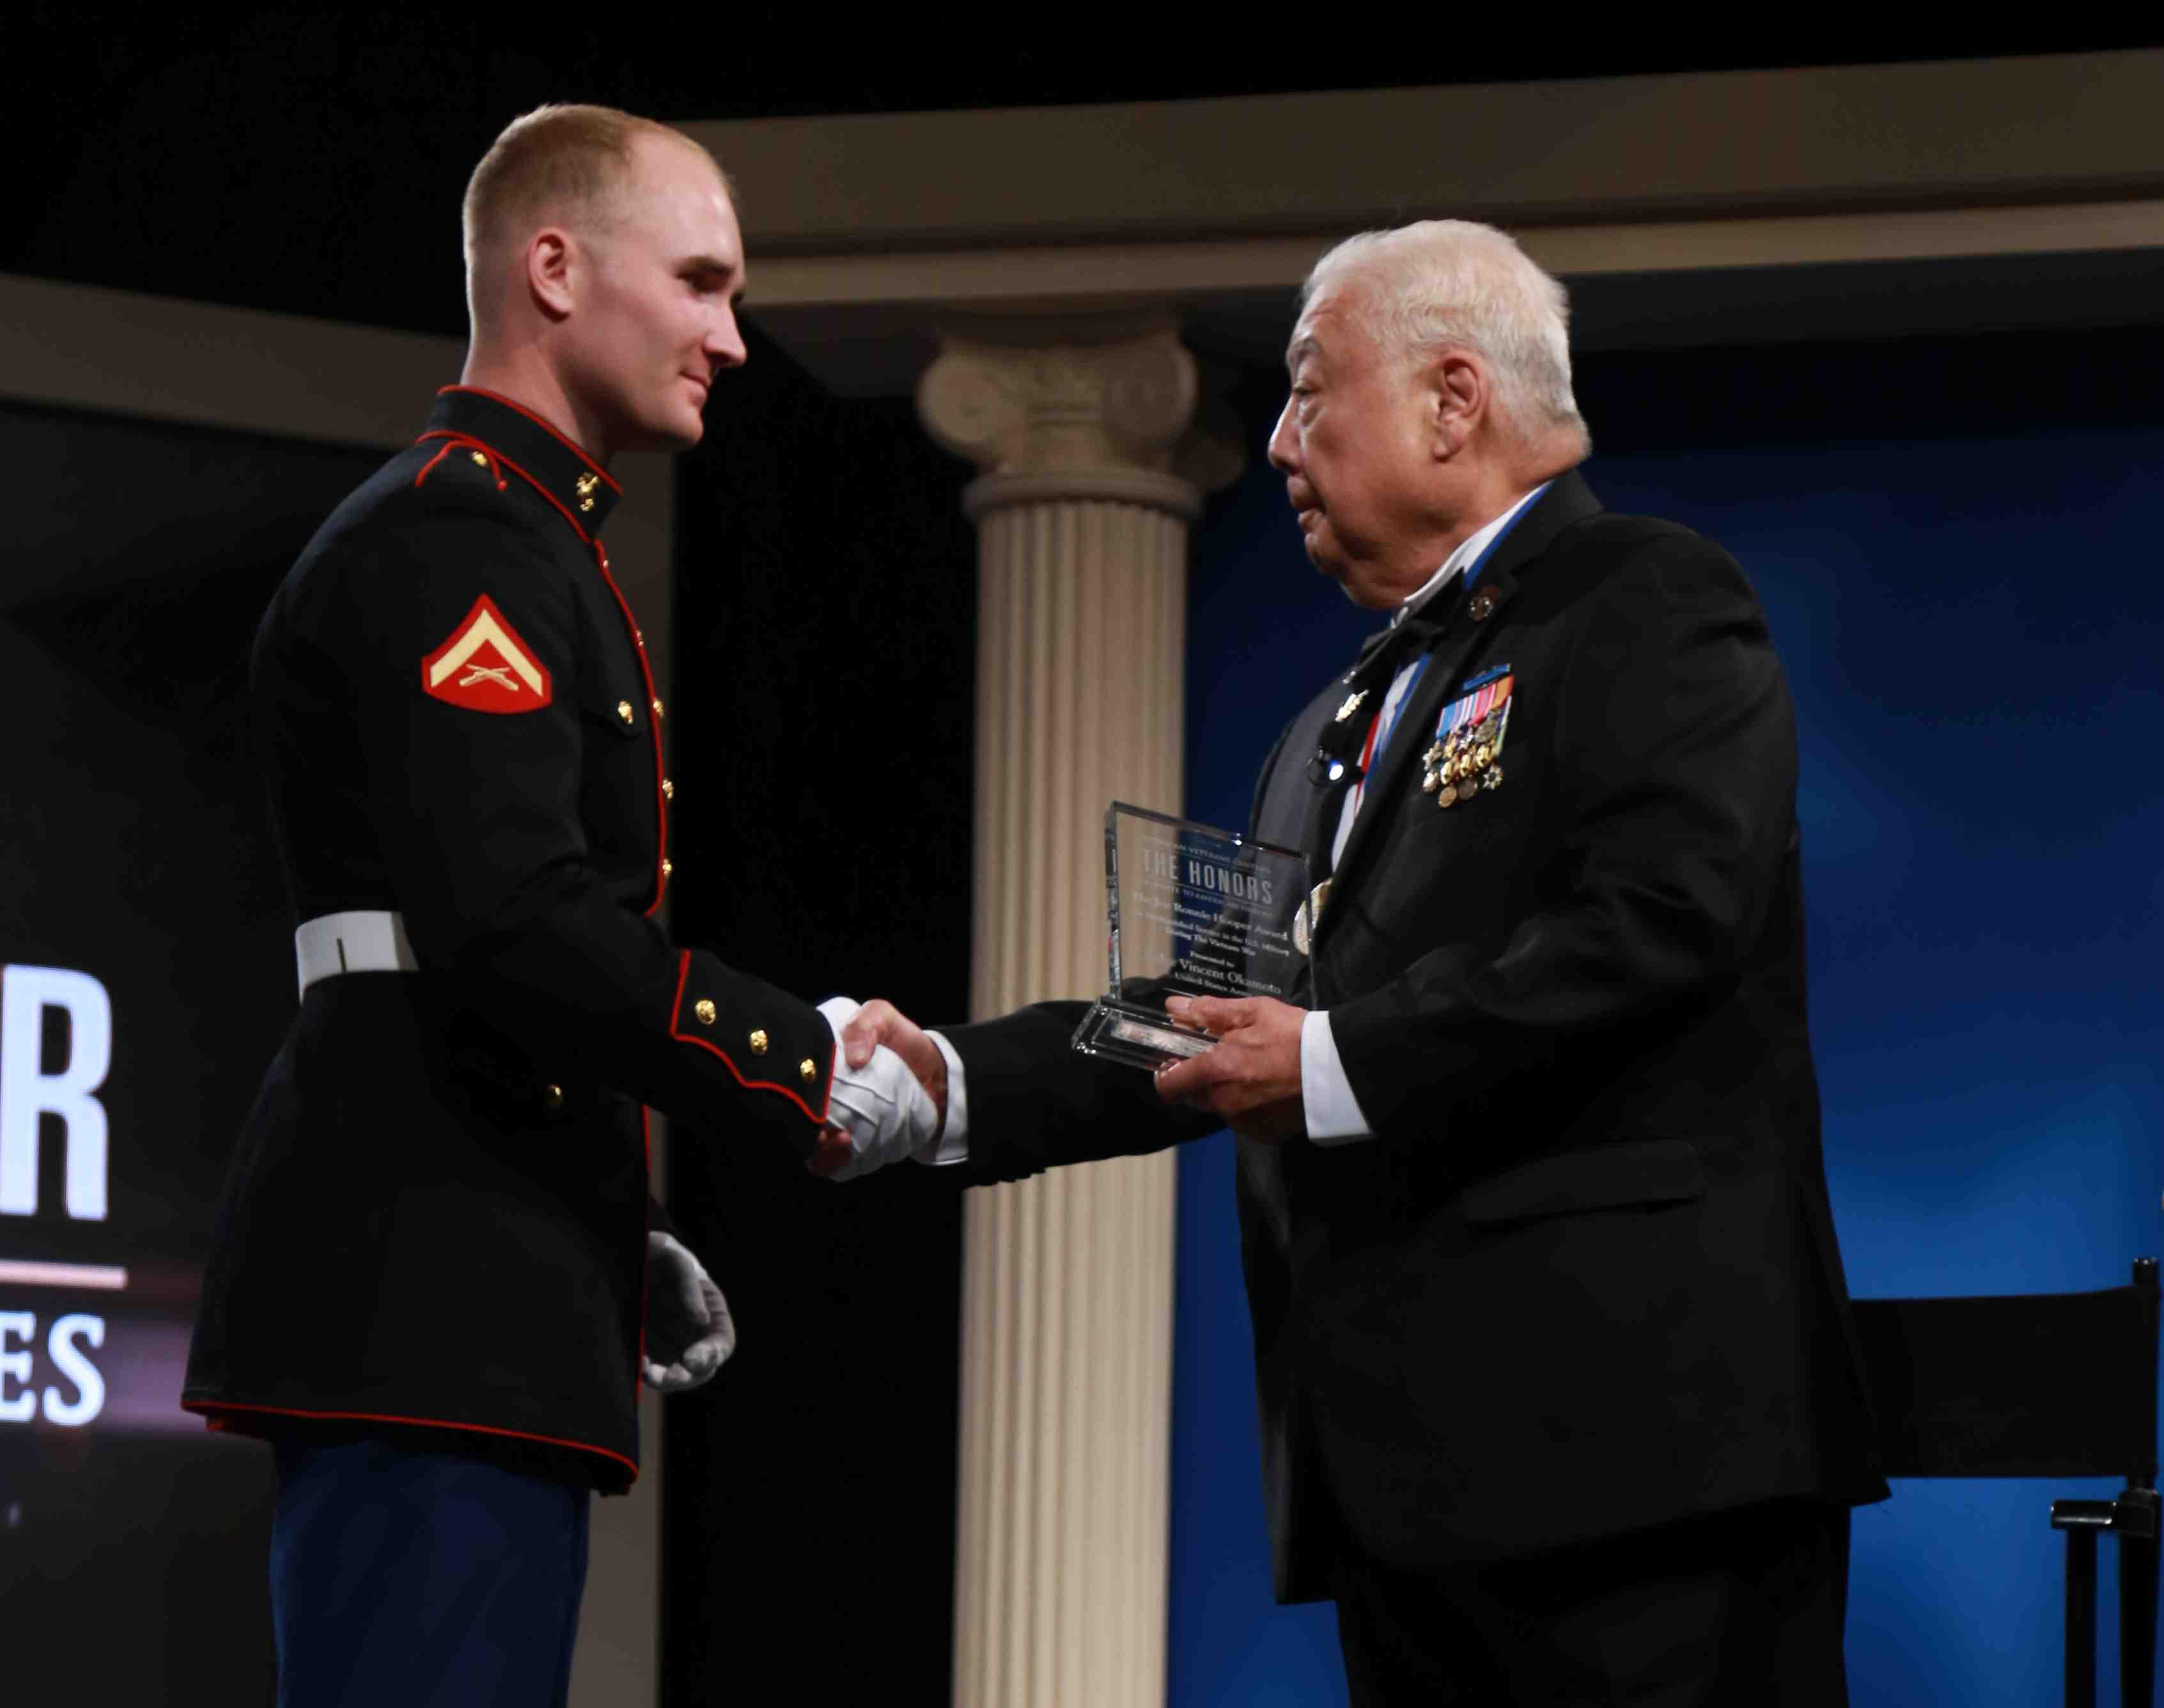 Vincent Okamoto is recognized at the American Veterans Center awards ceremony.